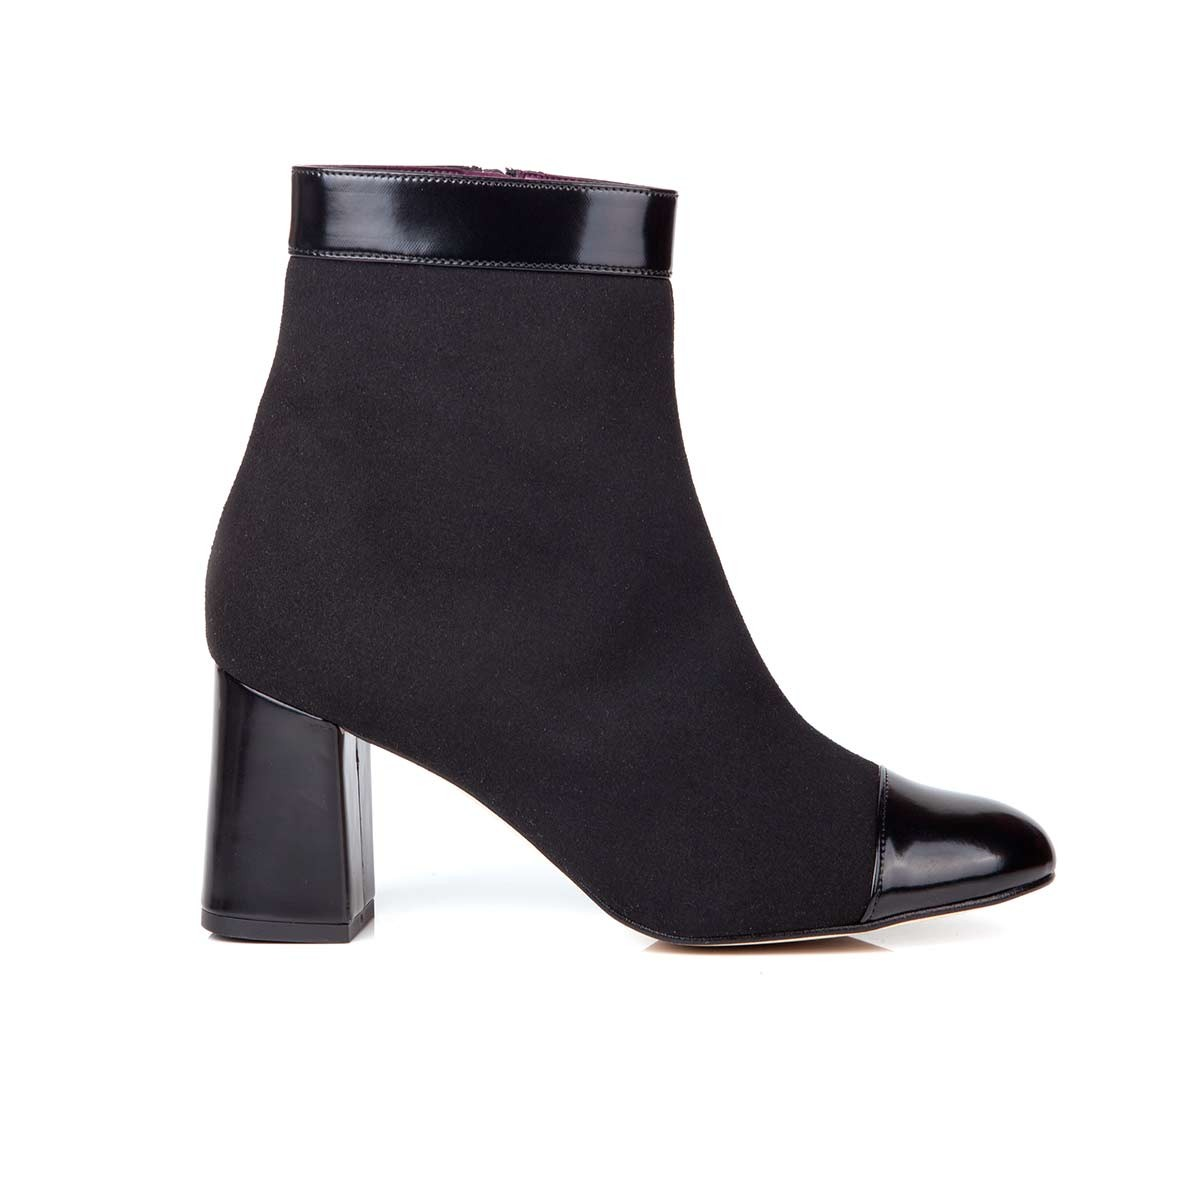 Beyond Skin Gorgeous Vegan Heel Ankle Boots Made In Spain